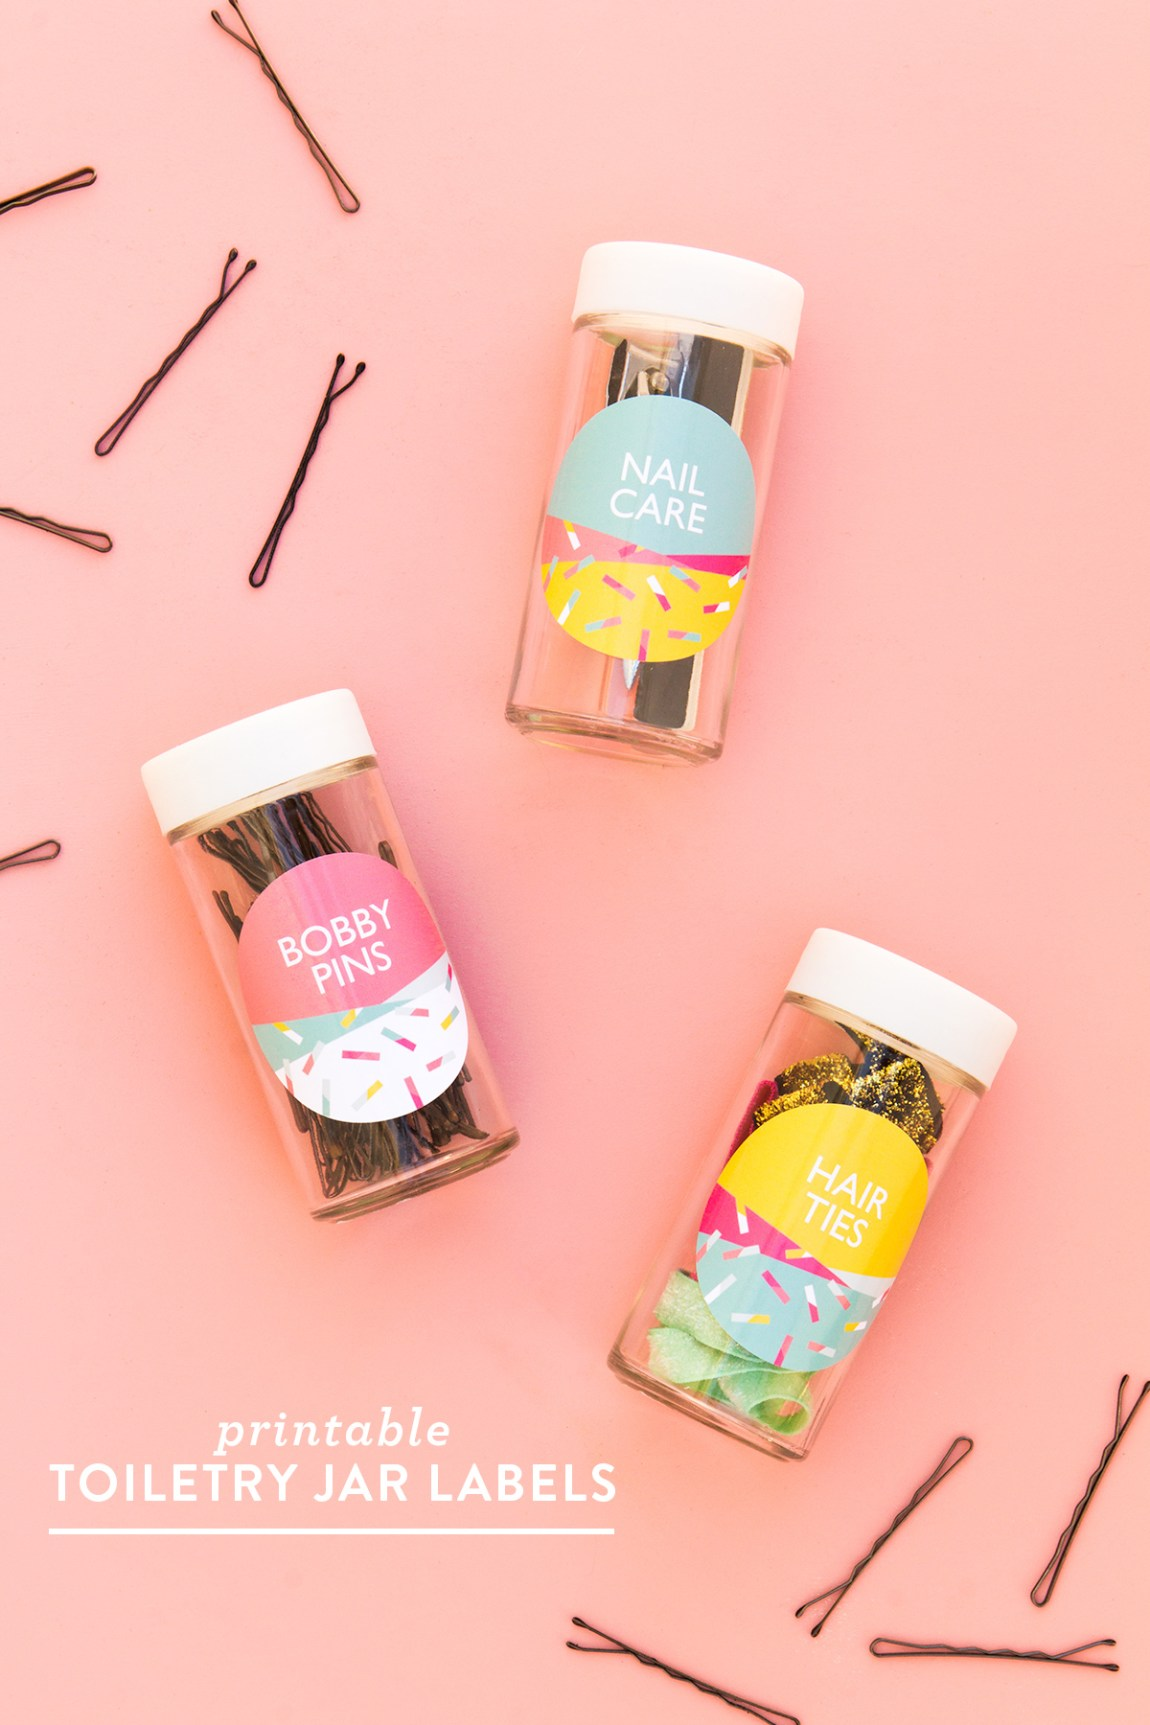 Spice jars aren't just for spices, use them with these colorful @avery labels to organize your toiletries and hair accessories.